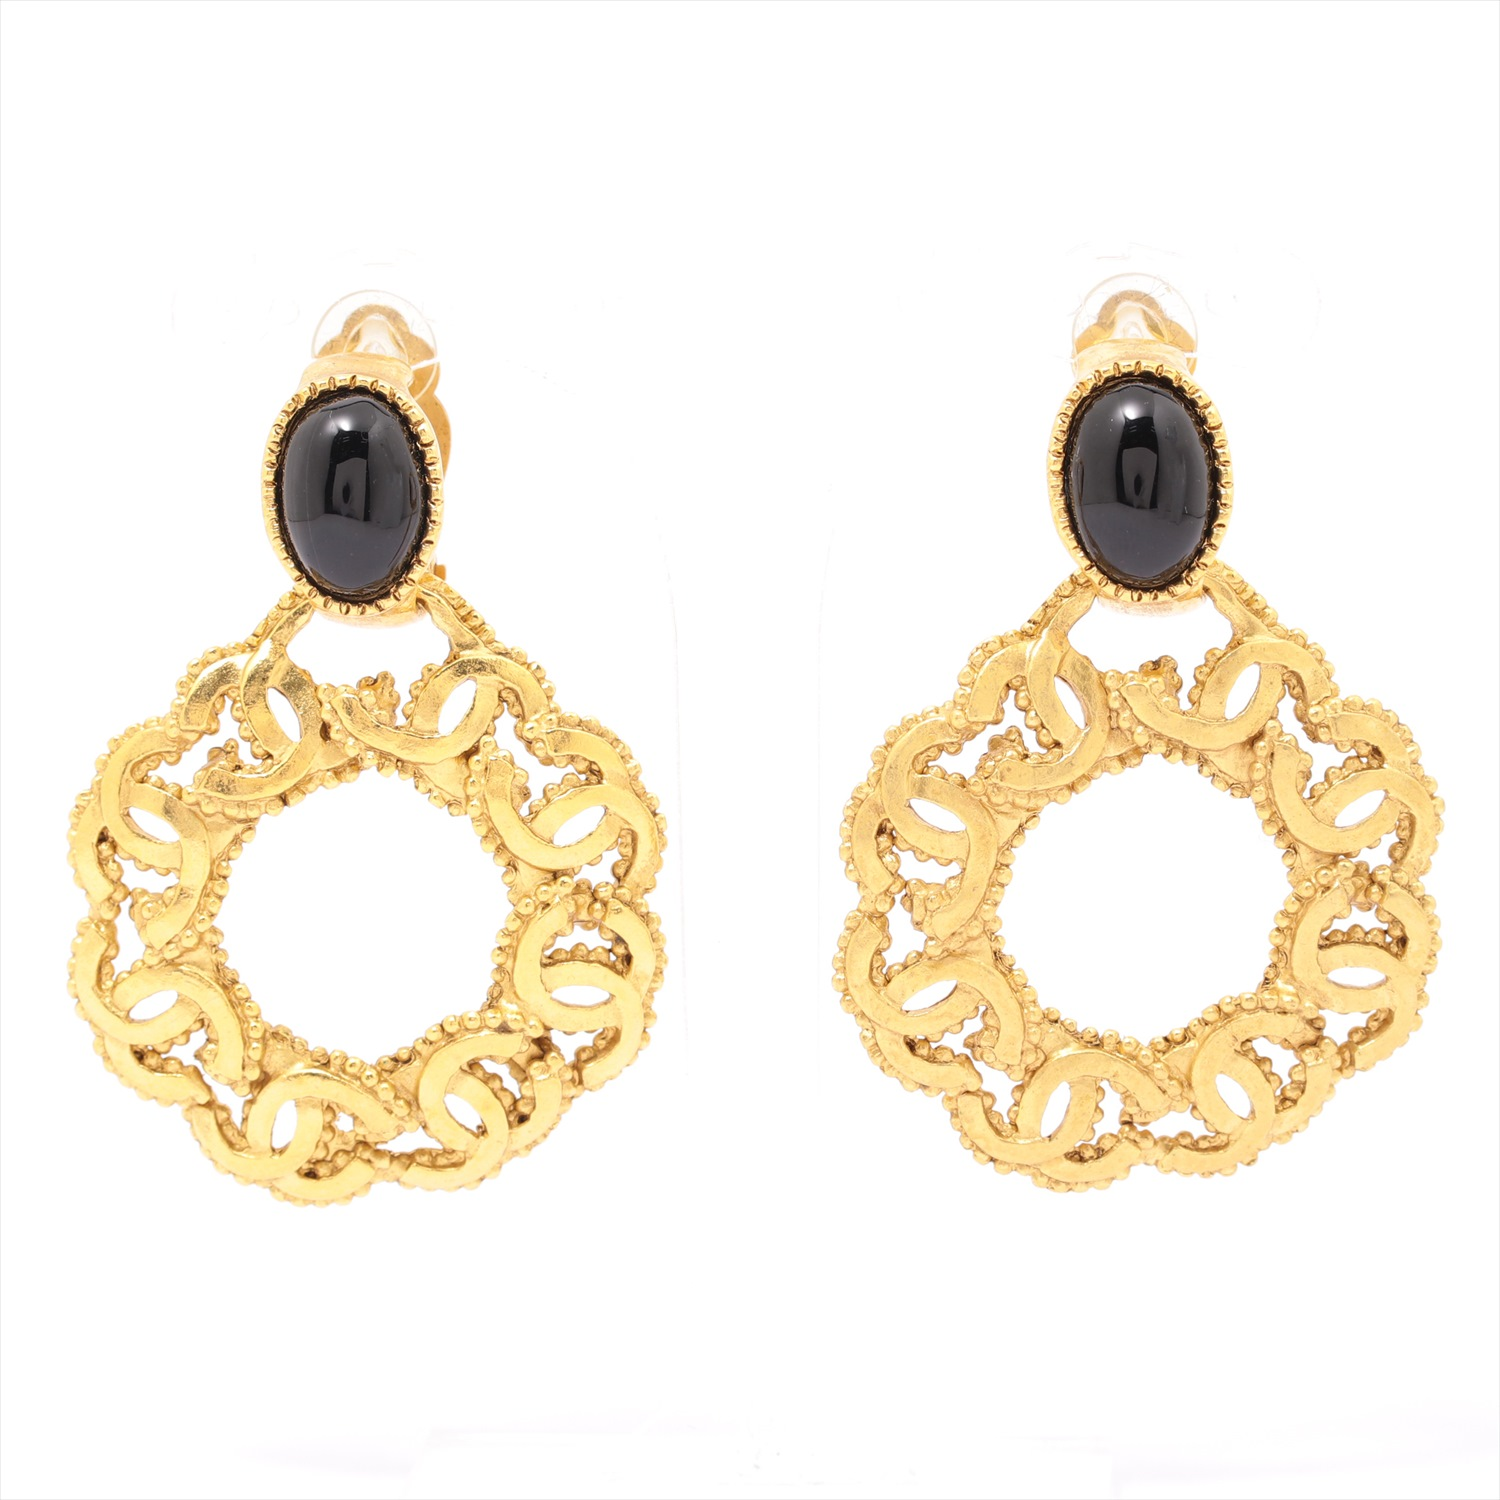 [Used goods] Chanel Coco mark earrings (for both ears) GP Gold Blackstone 94A